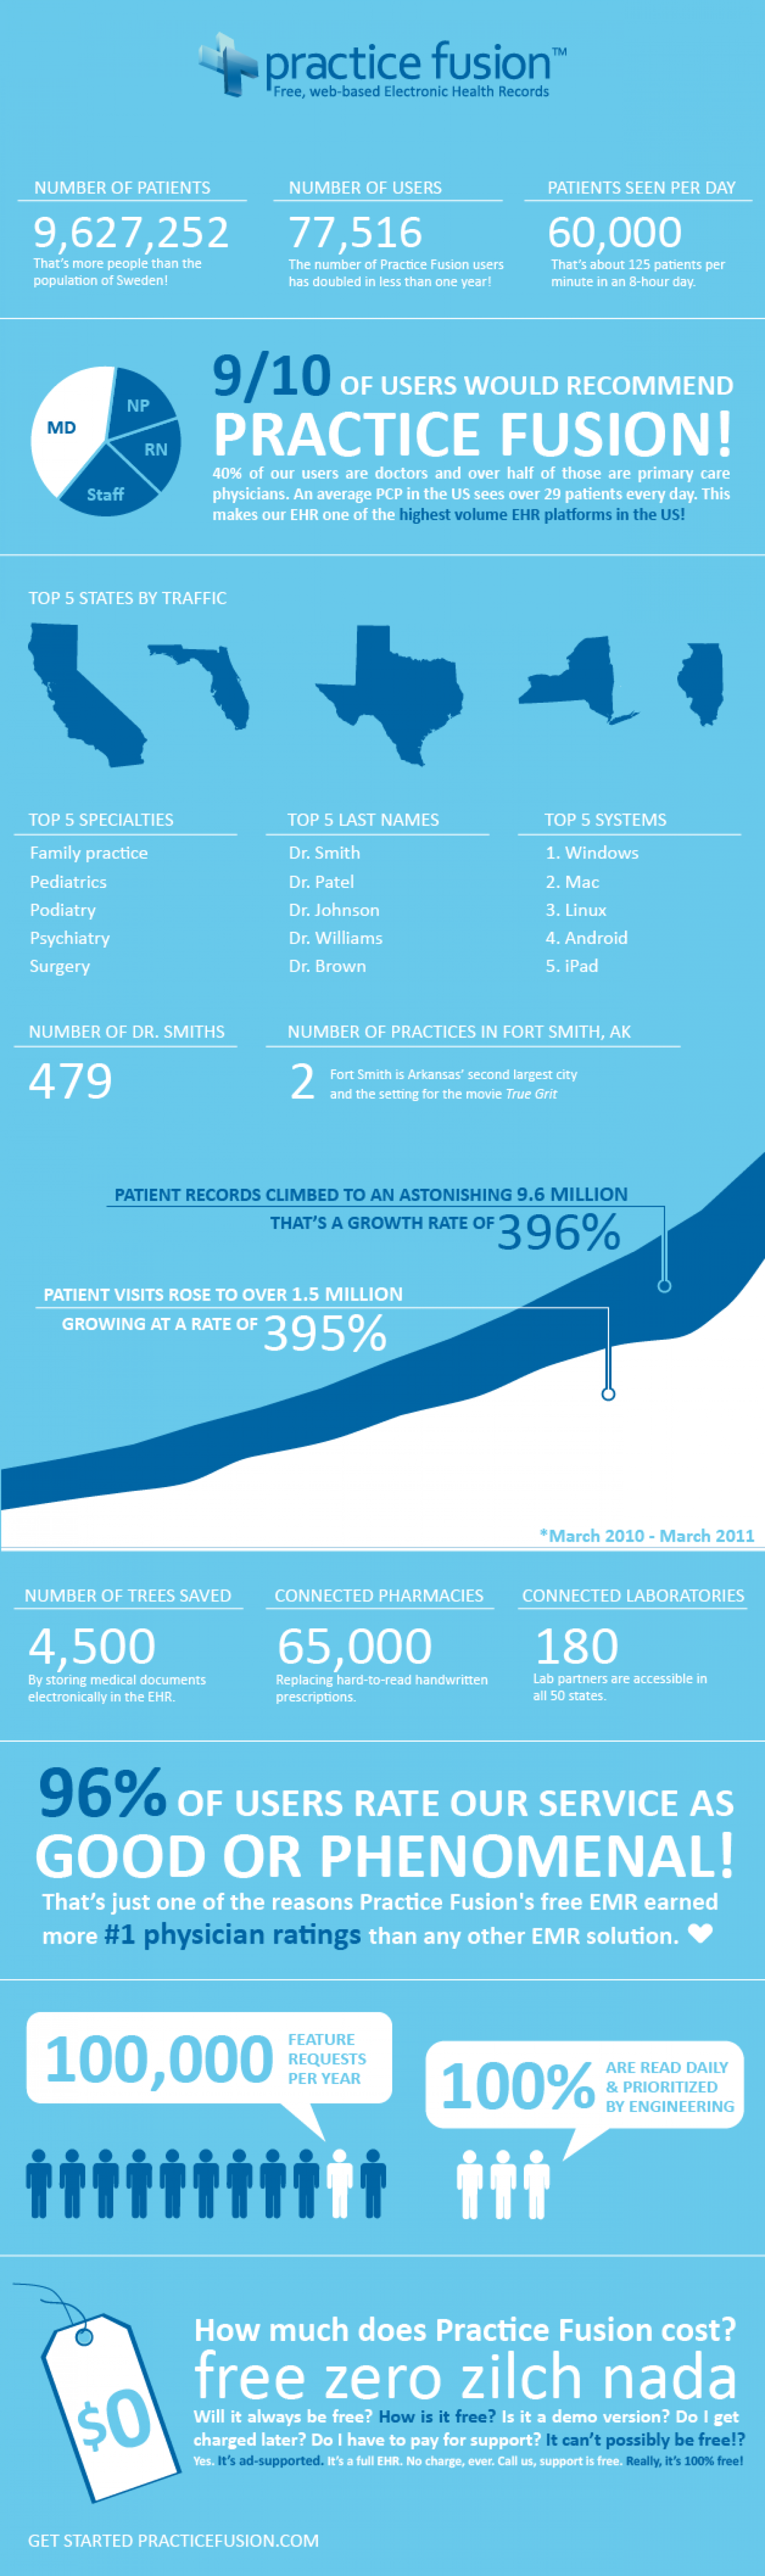 Practice Fusion's Free EHR Community by the Numbers Infographic